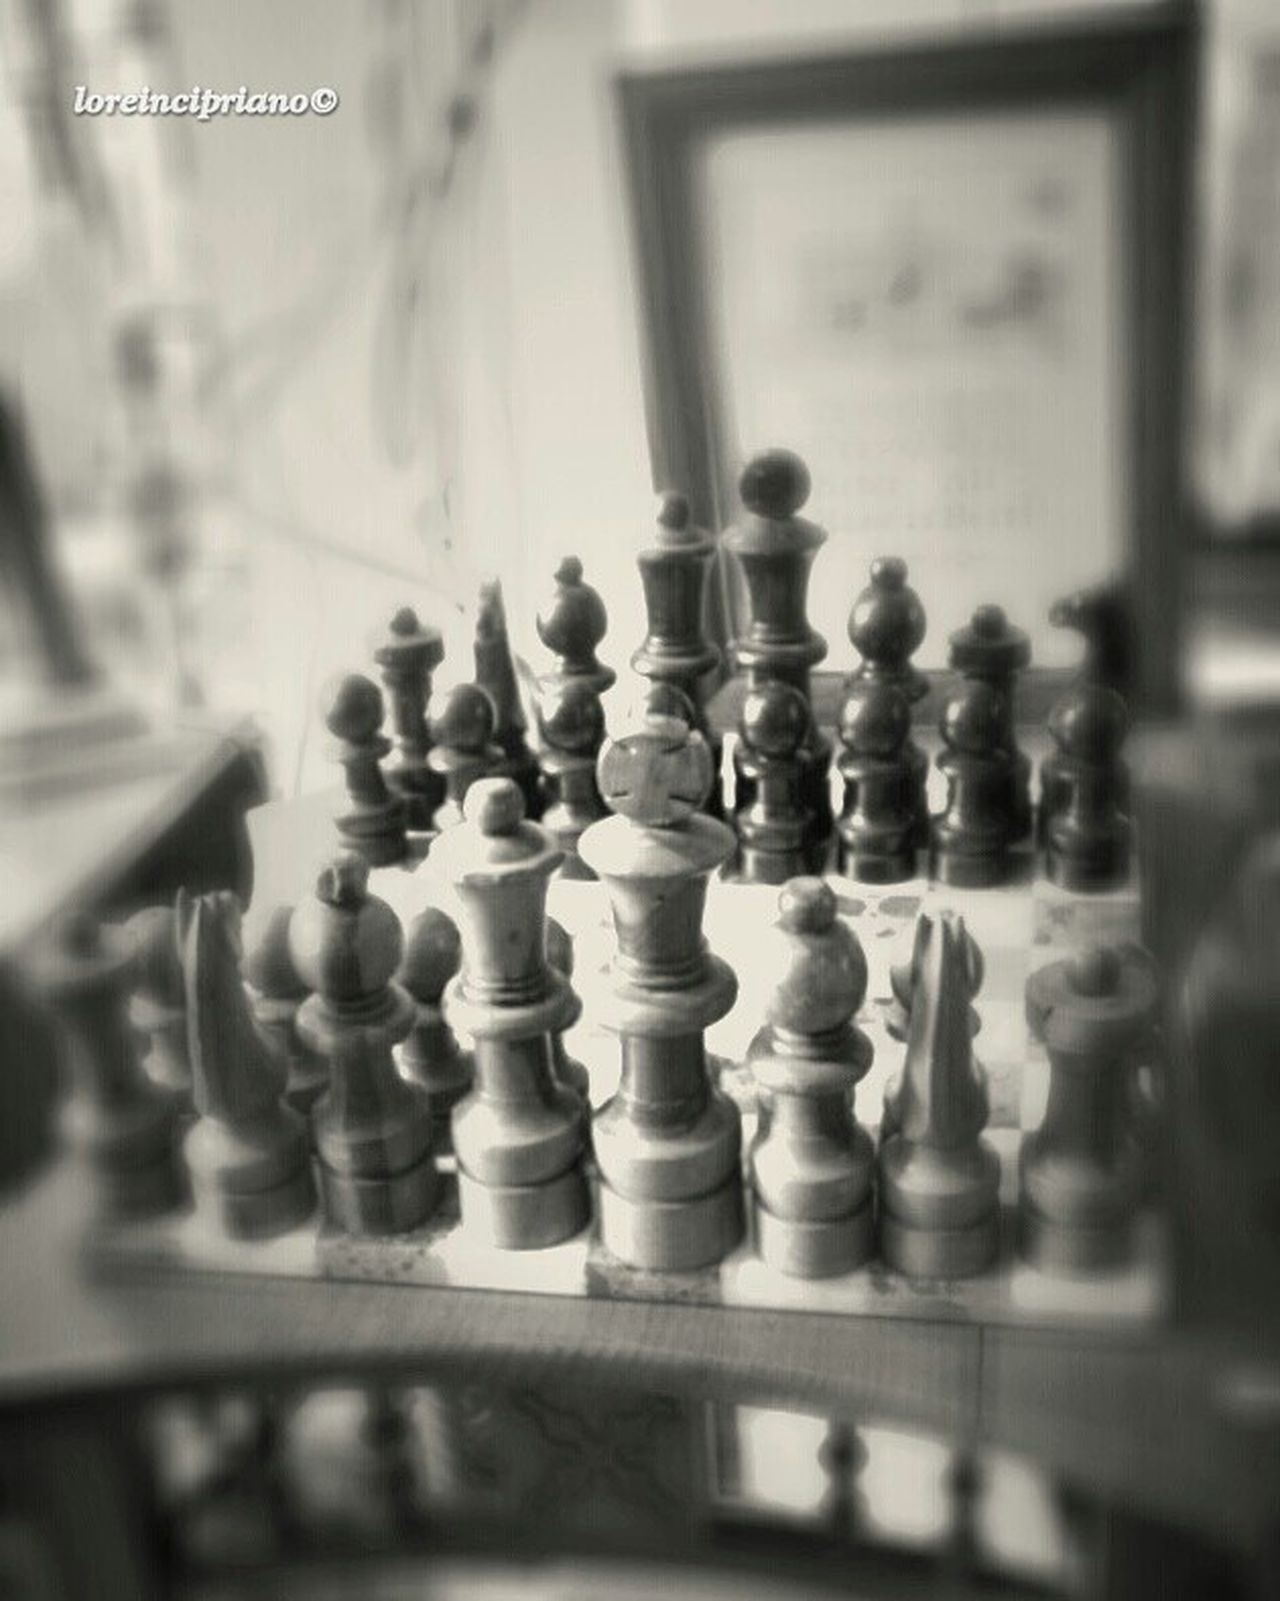 Chess Board Antique Chess King - Chess Piece Leisure Games Strategy Chess Piece Foto_blackandwhite Show_us_bw Bnw Photography Fa_fadeaway Pf_bnw Bnw_mania__ Bnwphotography